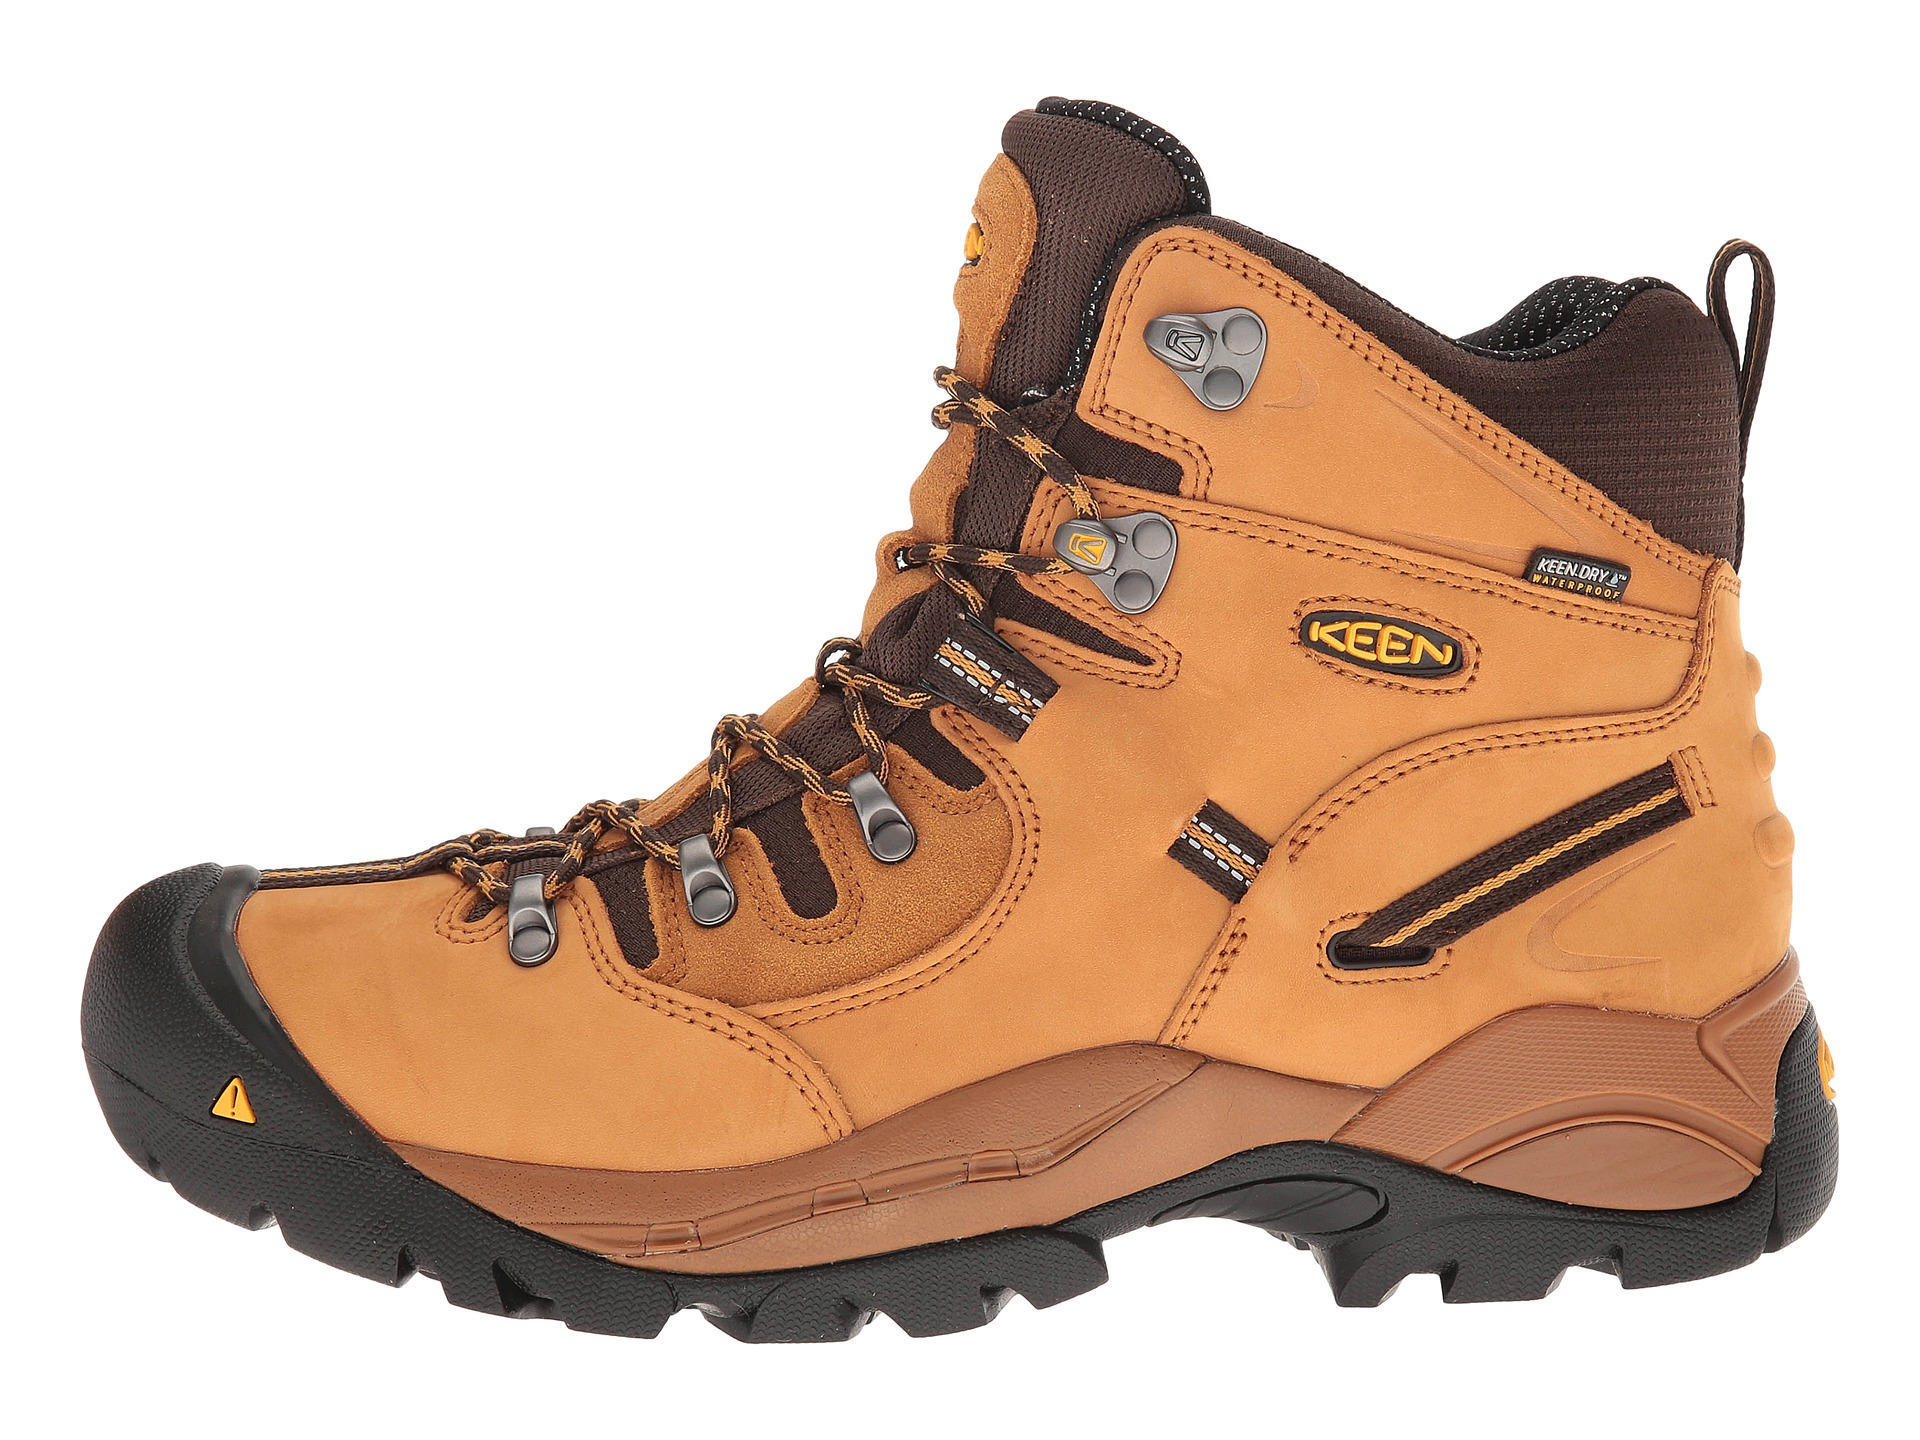 KEEN Utility. KEEN Utility makes comfortable footwear that can be worn all day on.